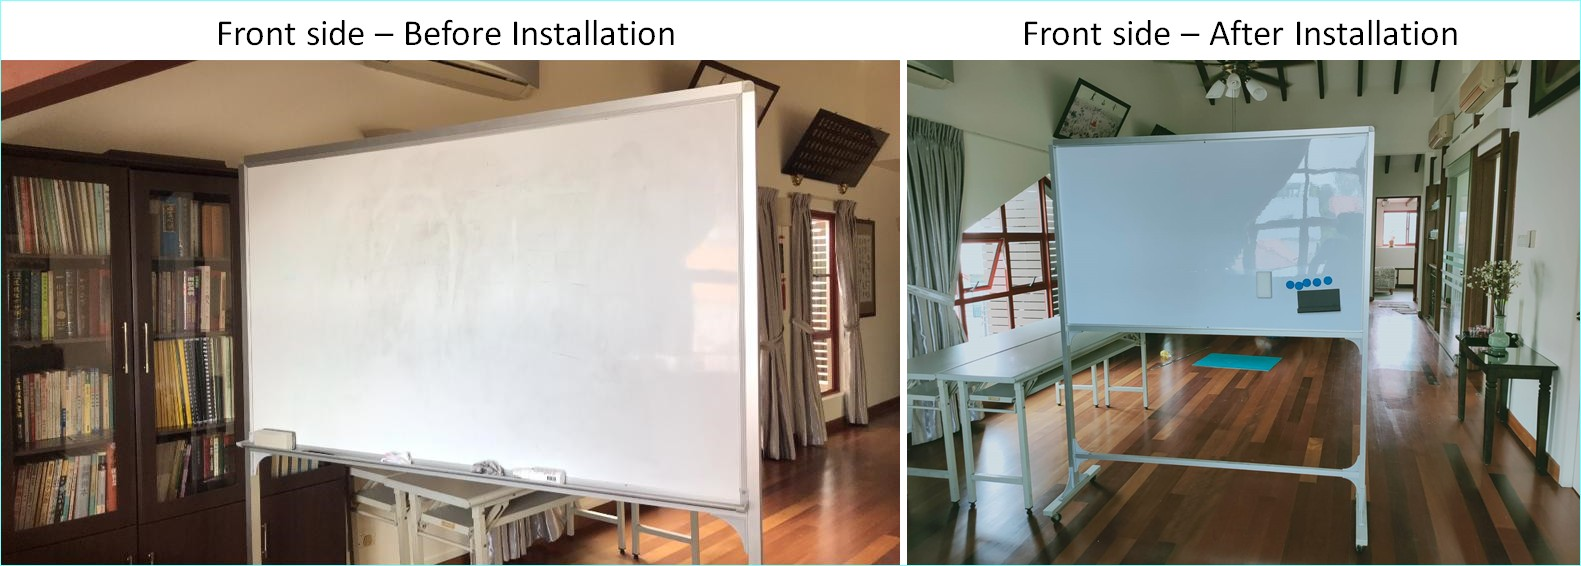 Installation of Magnetic Mobile Whiteboard (Front side)